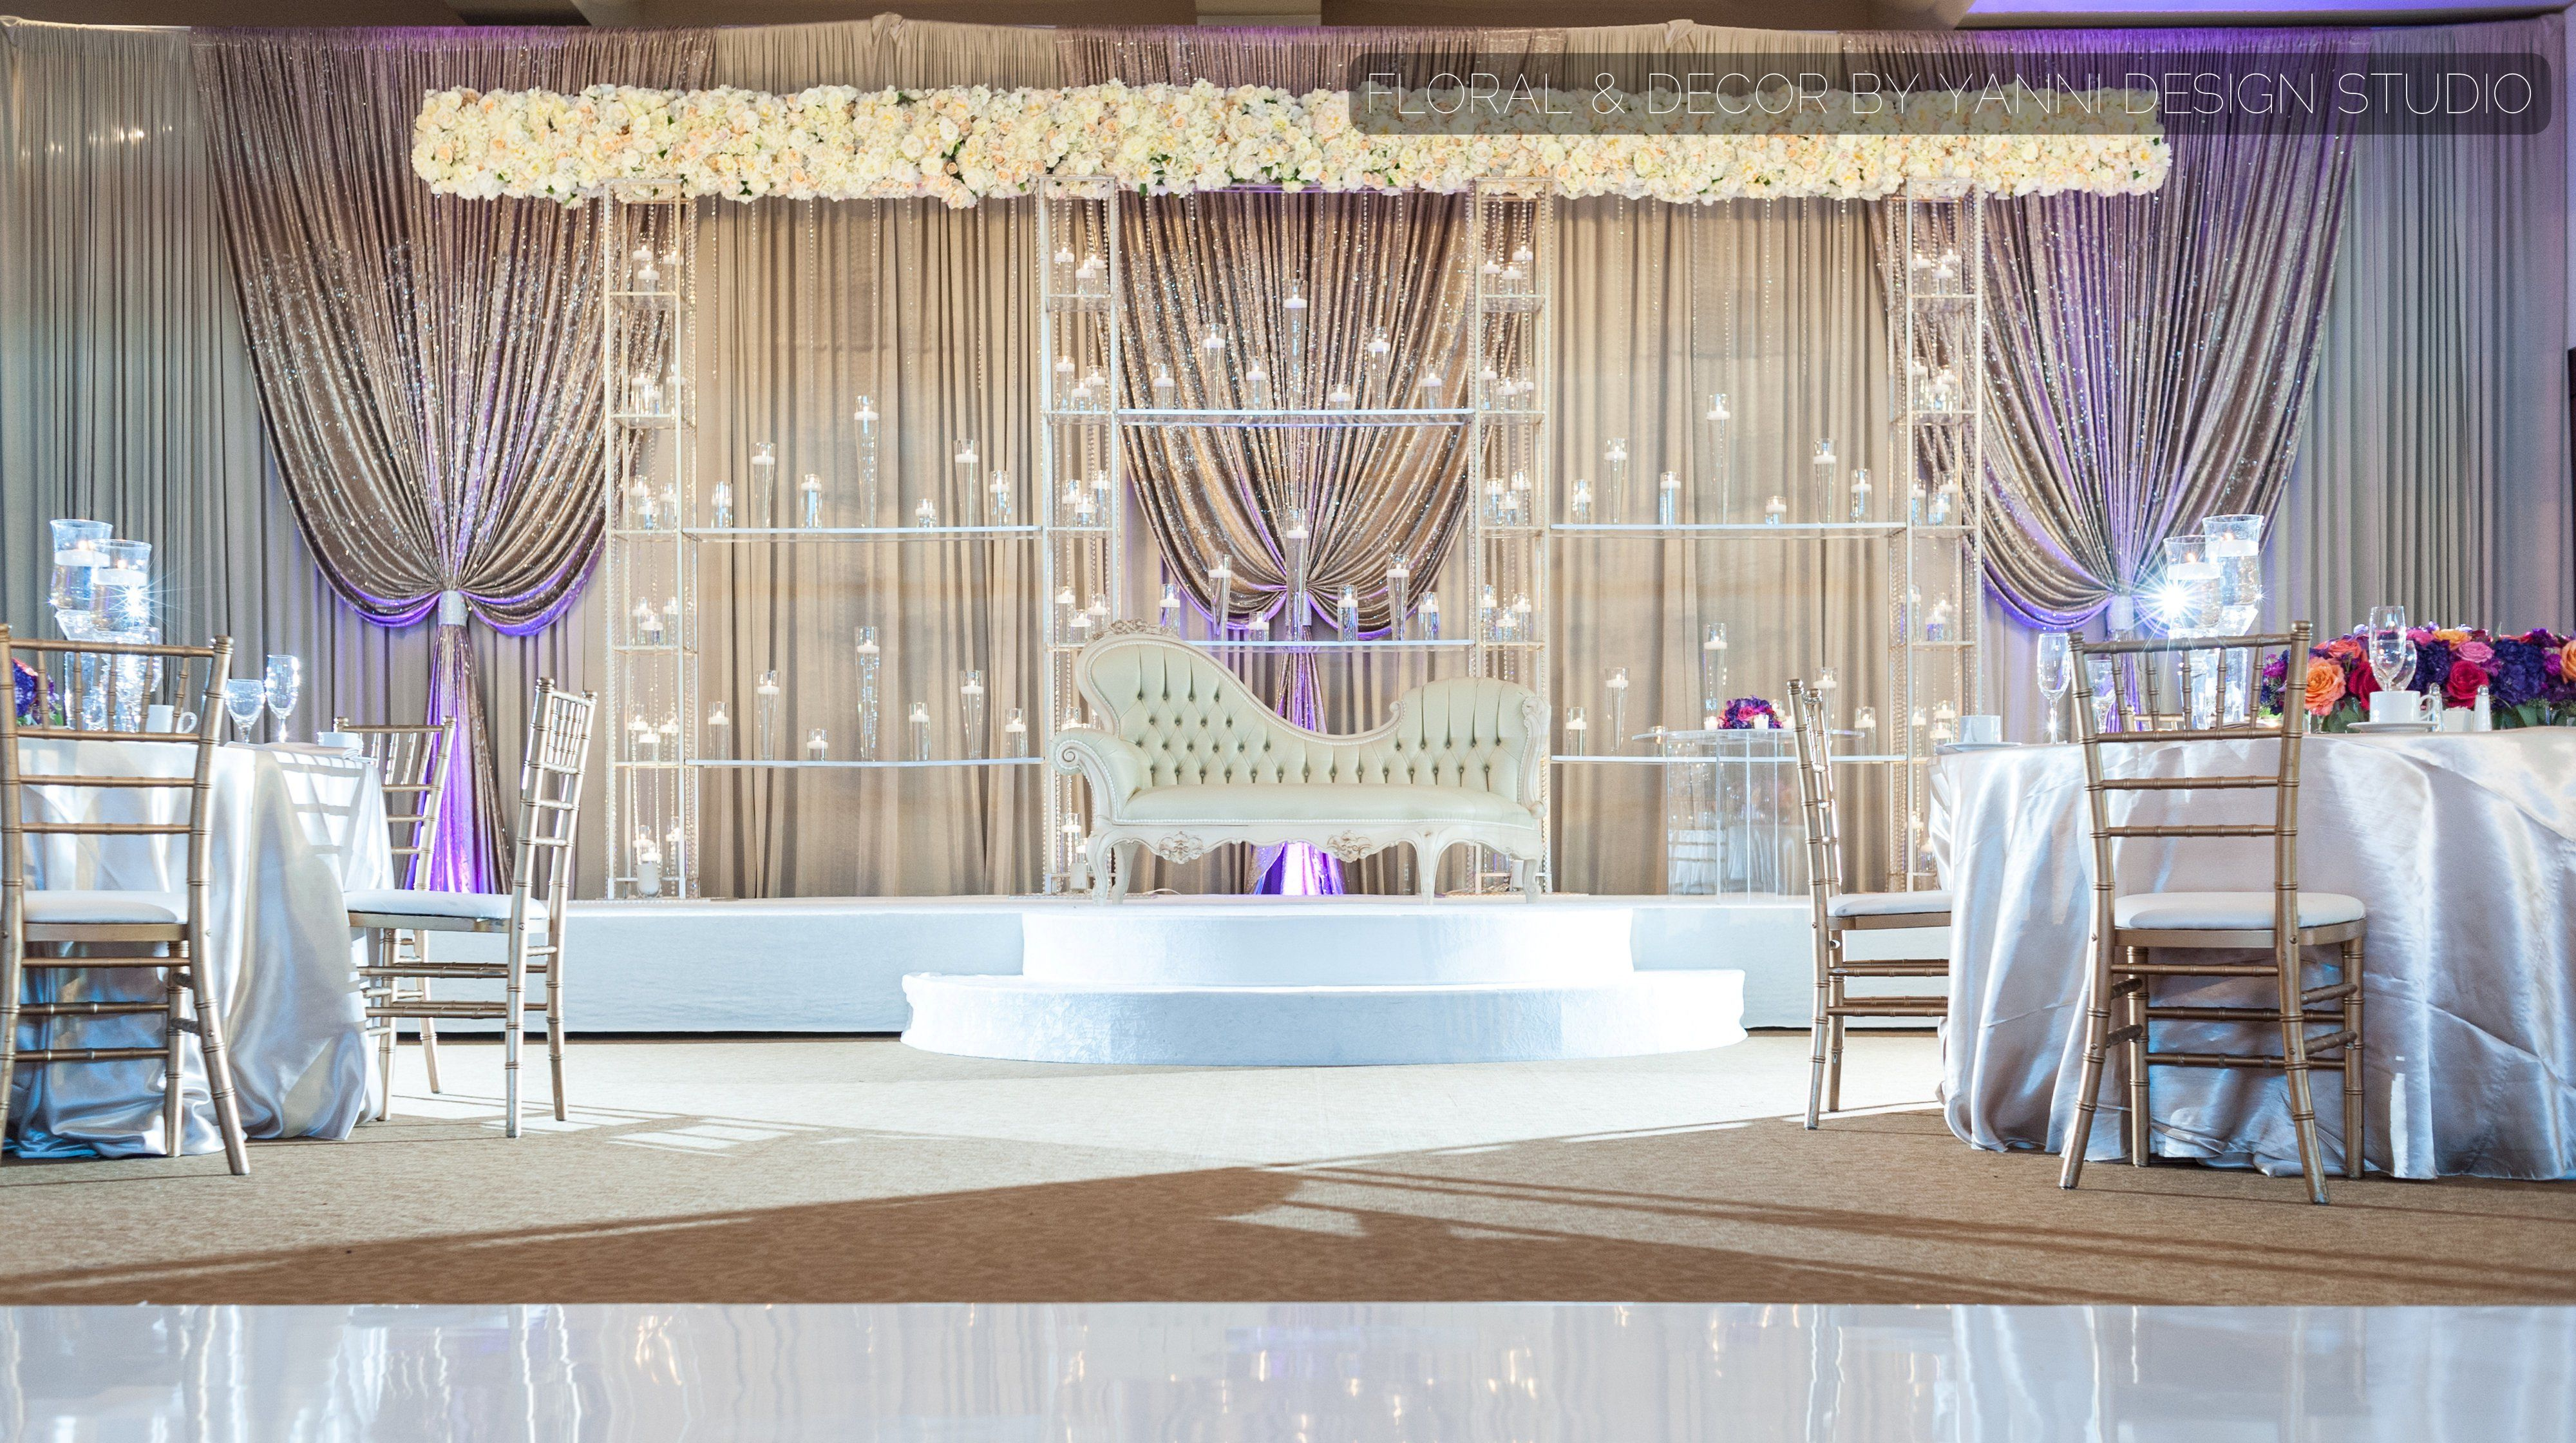 Wedding flowers and decorations wedding stage design indian modern indian wedding stage design includes contemporary metal structure lush drapery and a royal junglespirit Images